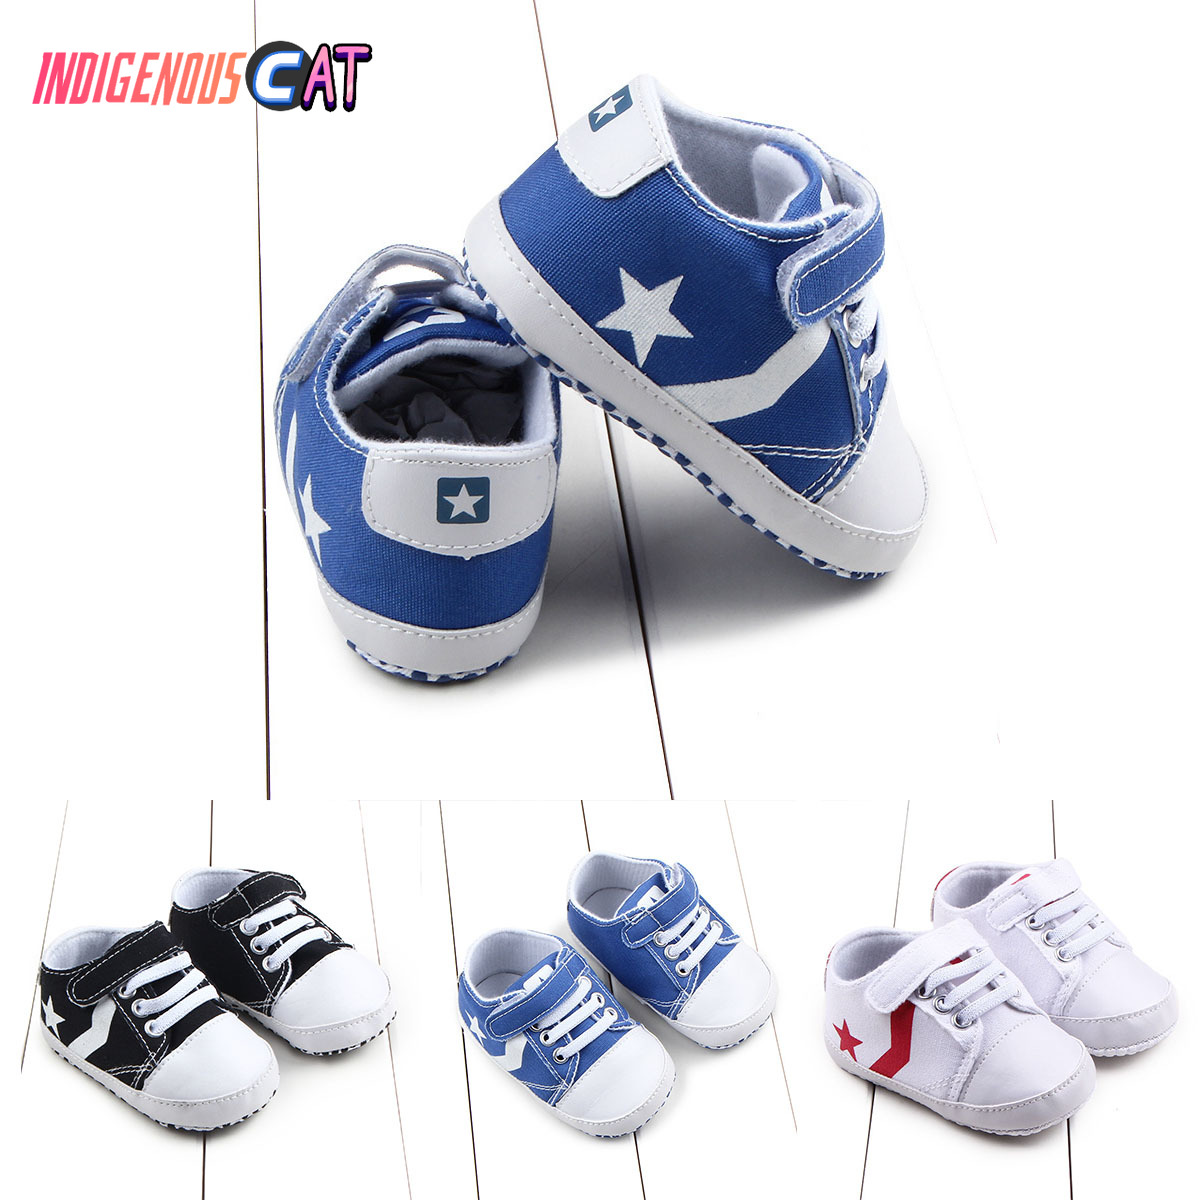 2019 New Spring Fashion Toddler First Walker 0-1 Years Old Baby Shoes Boys Sneaker Prewalker Canvas Kawaii